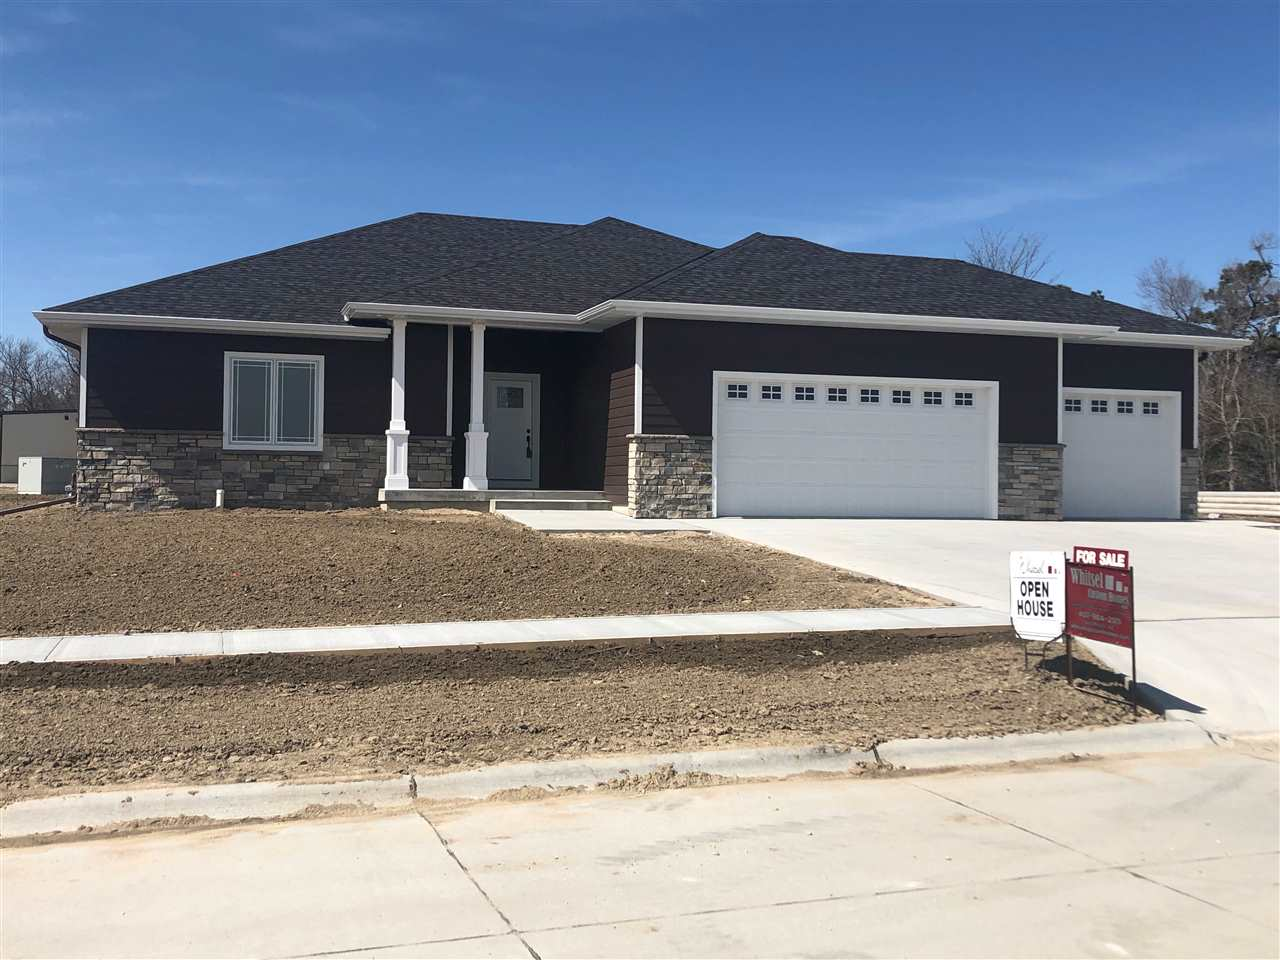 2913 Merle Ave., Hastings, Nebraska